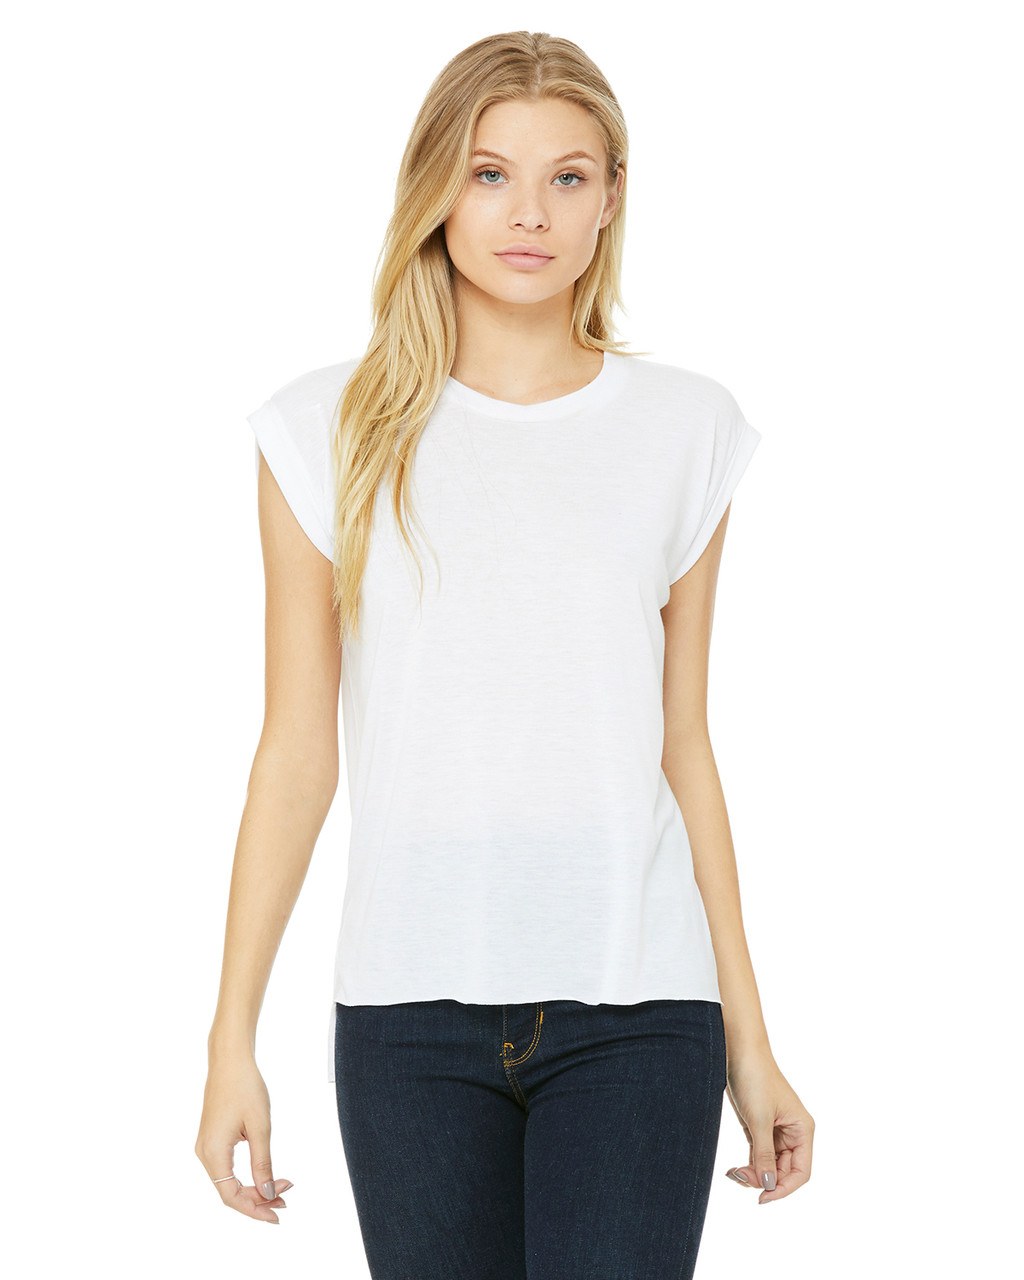 White - 8804 Bella+Canvas Ladies' Flowy Muscle T-Shirt with Rolled Cuff | Blankclothing.ca